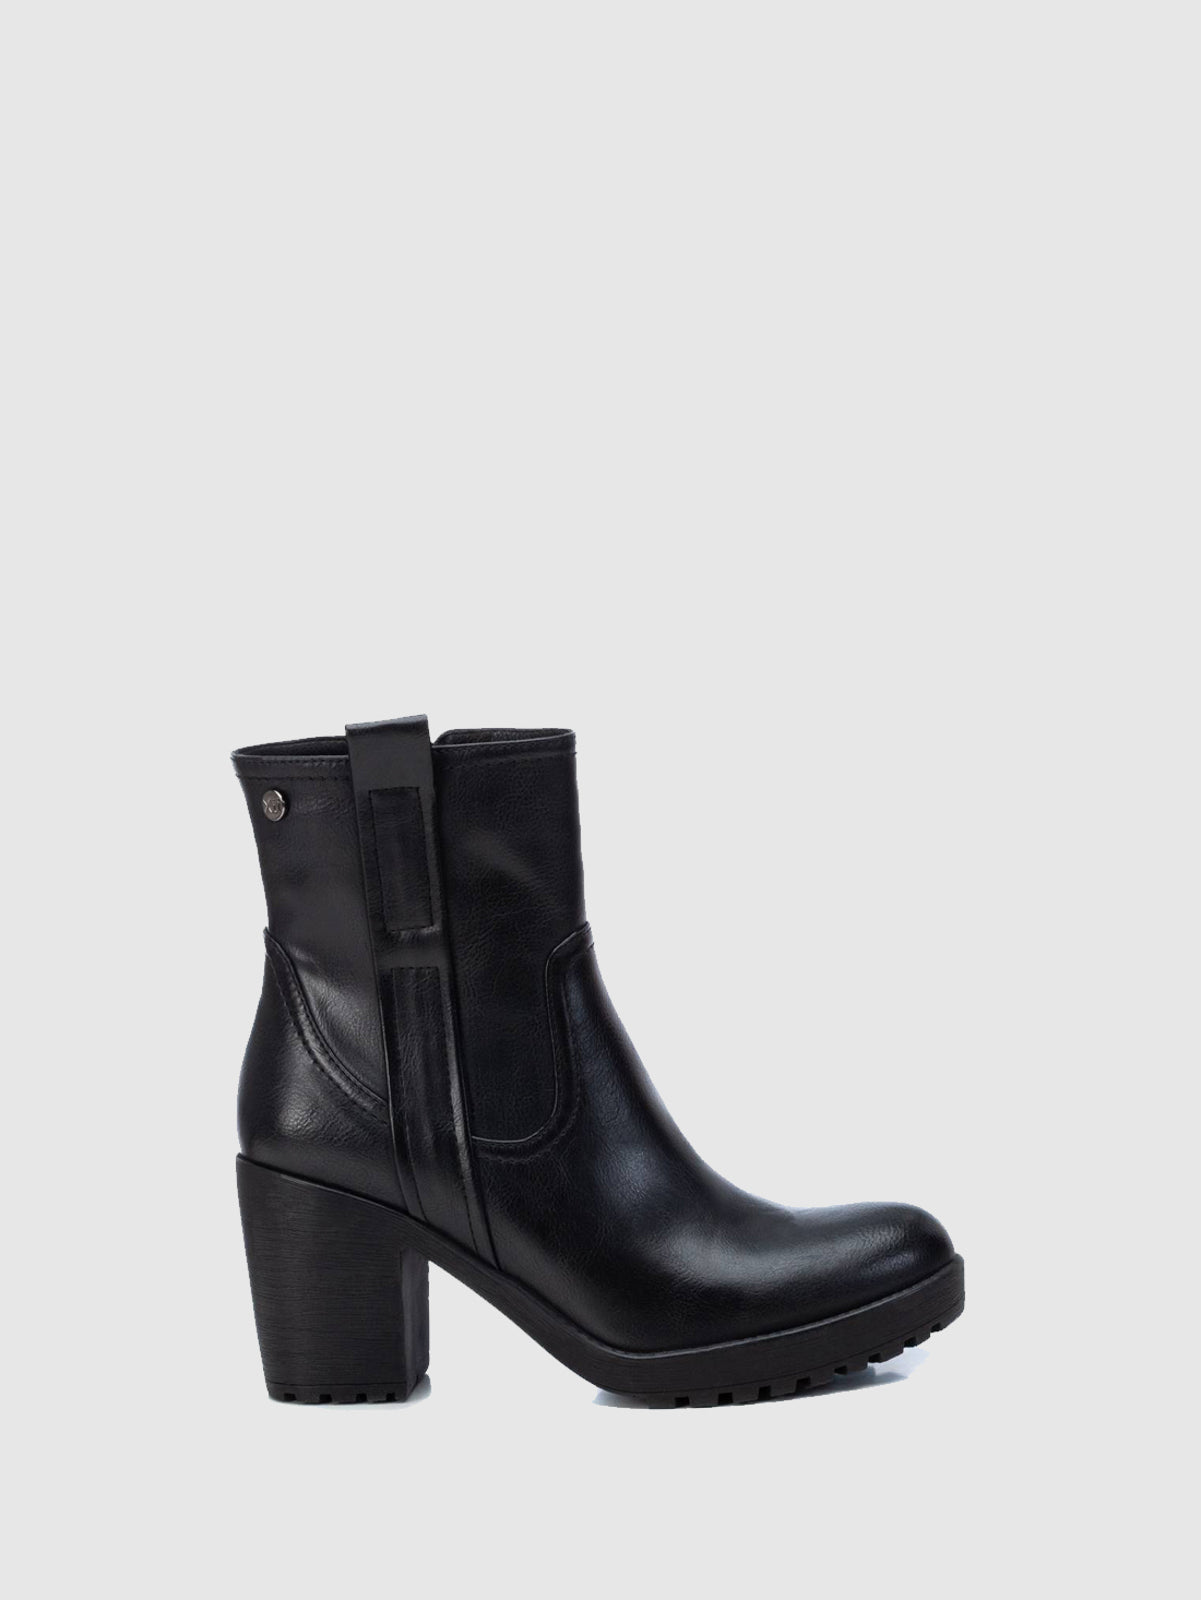 XTI Basic Black Zip Up Ankle Boots